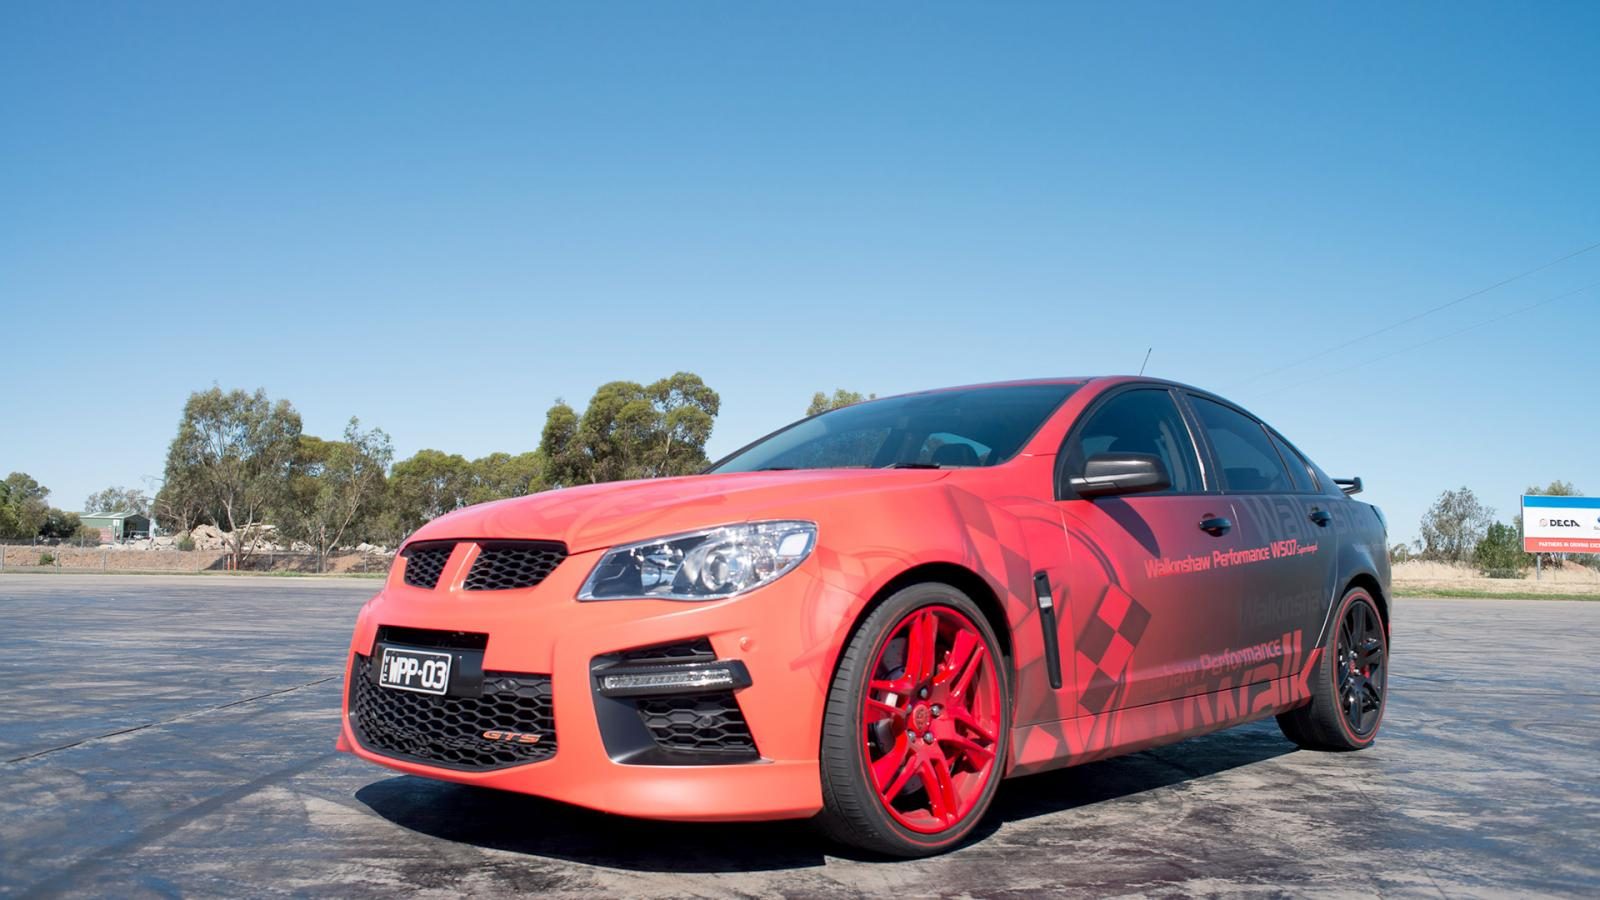 Hsv Gts Pumped Up To Over 500kw By Walkinshaw Performance